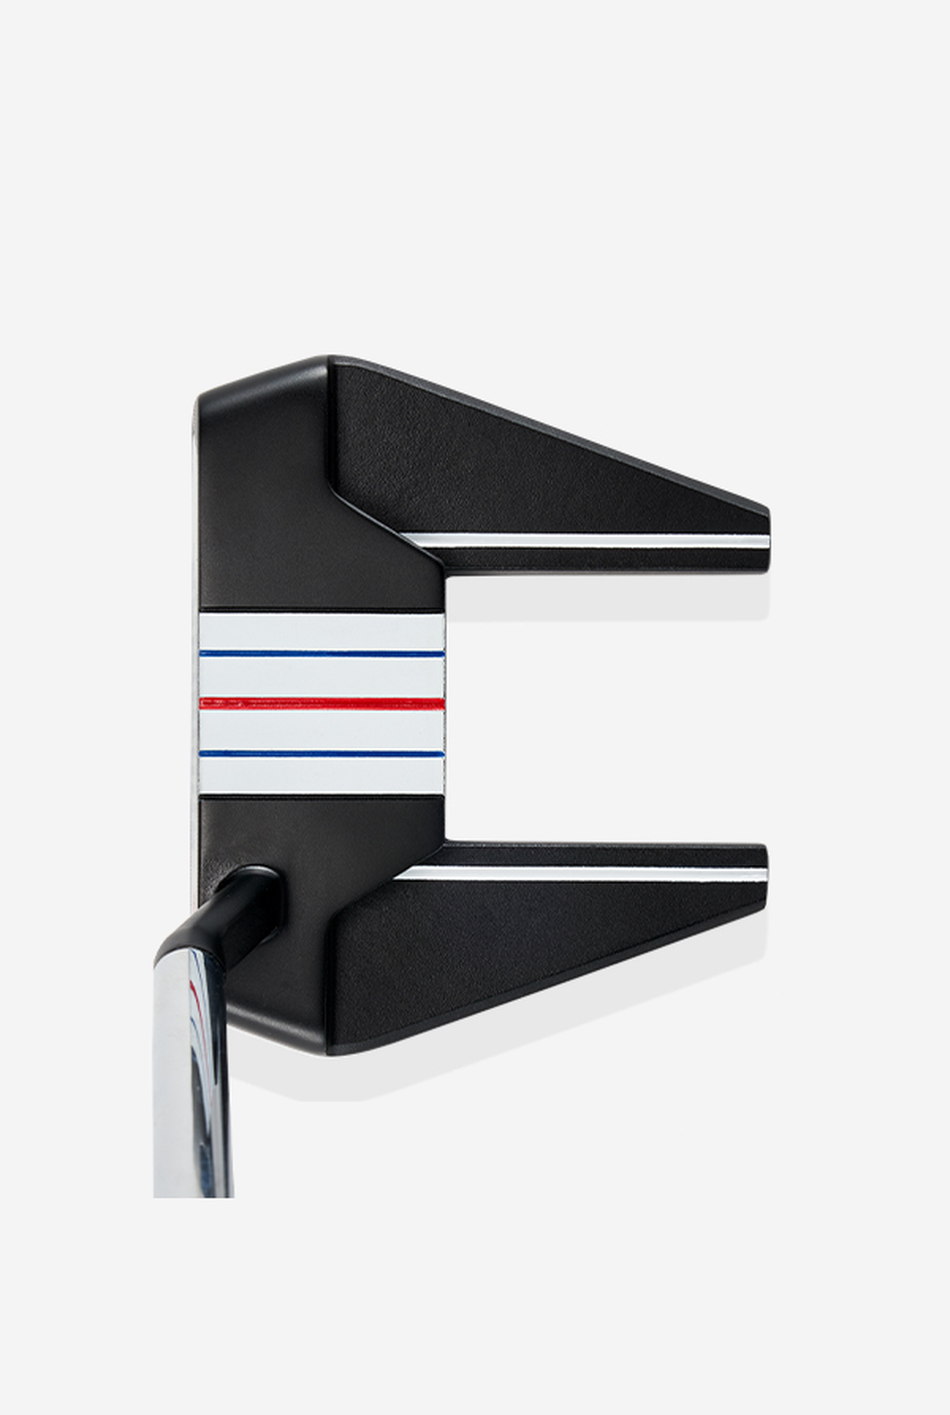 Triple Track Seven S Putter - Featured